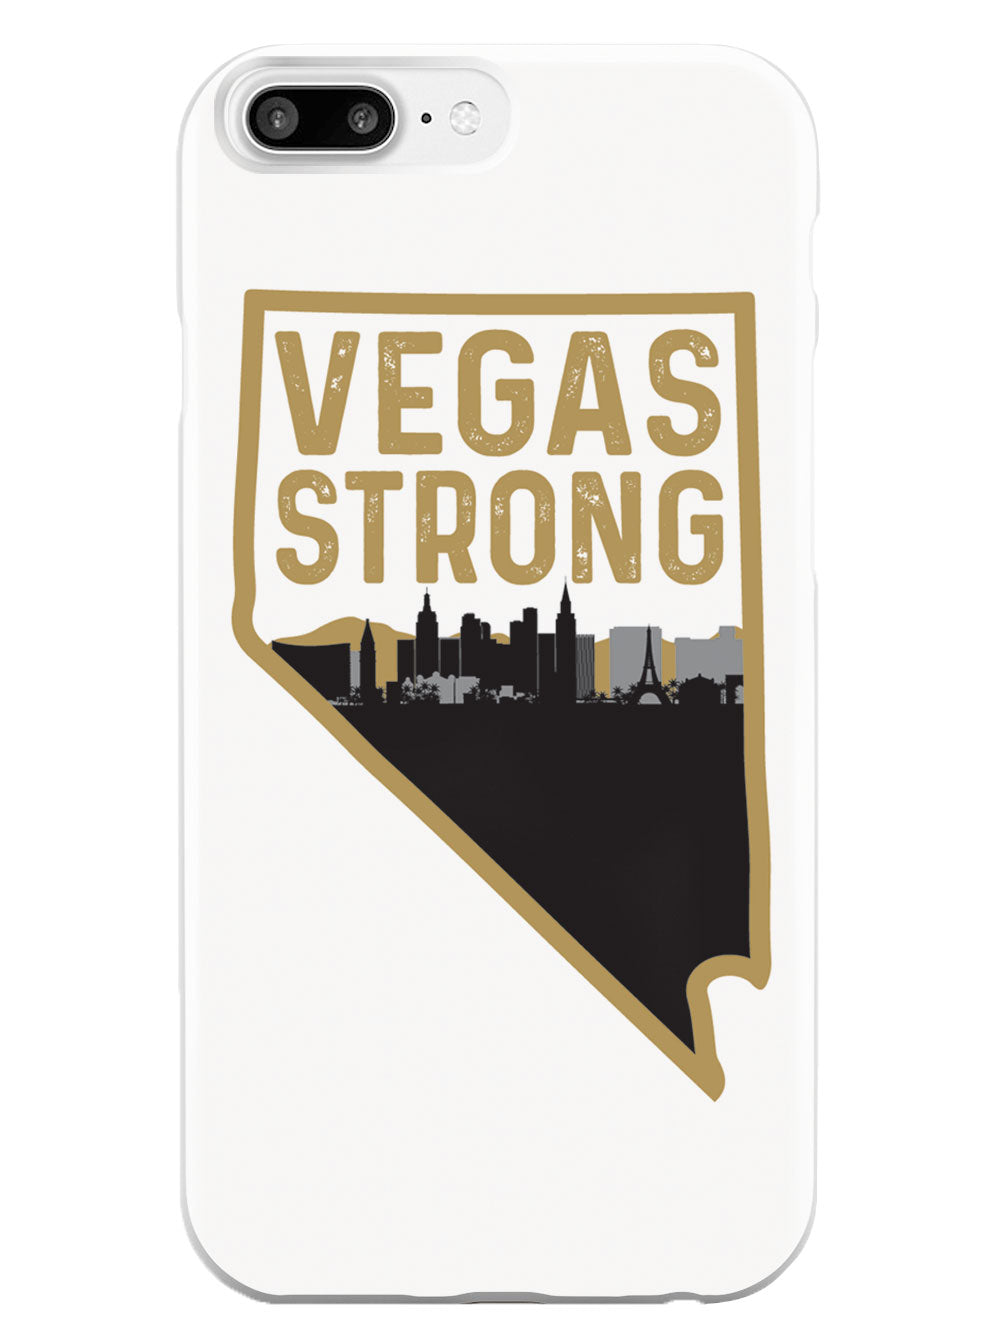 Vegas Strong - Nevada and City Silhouette - White Case